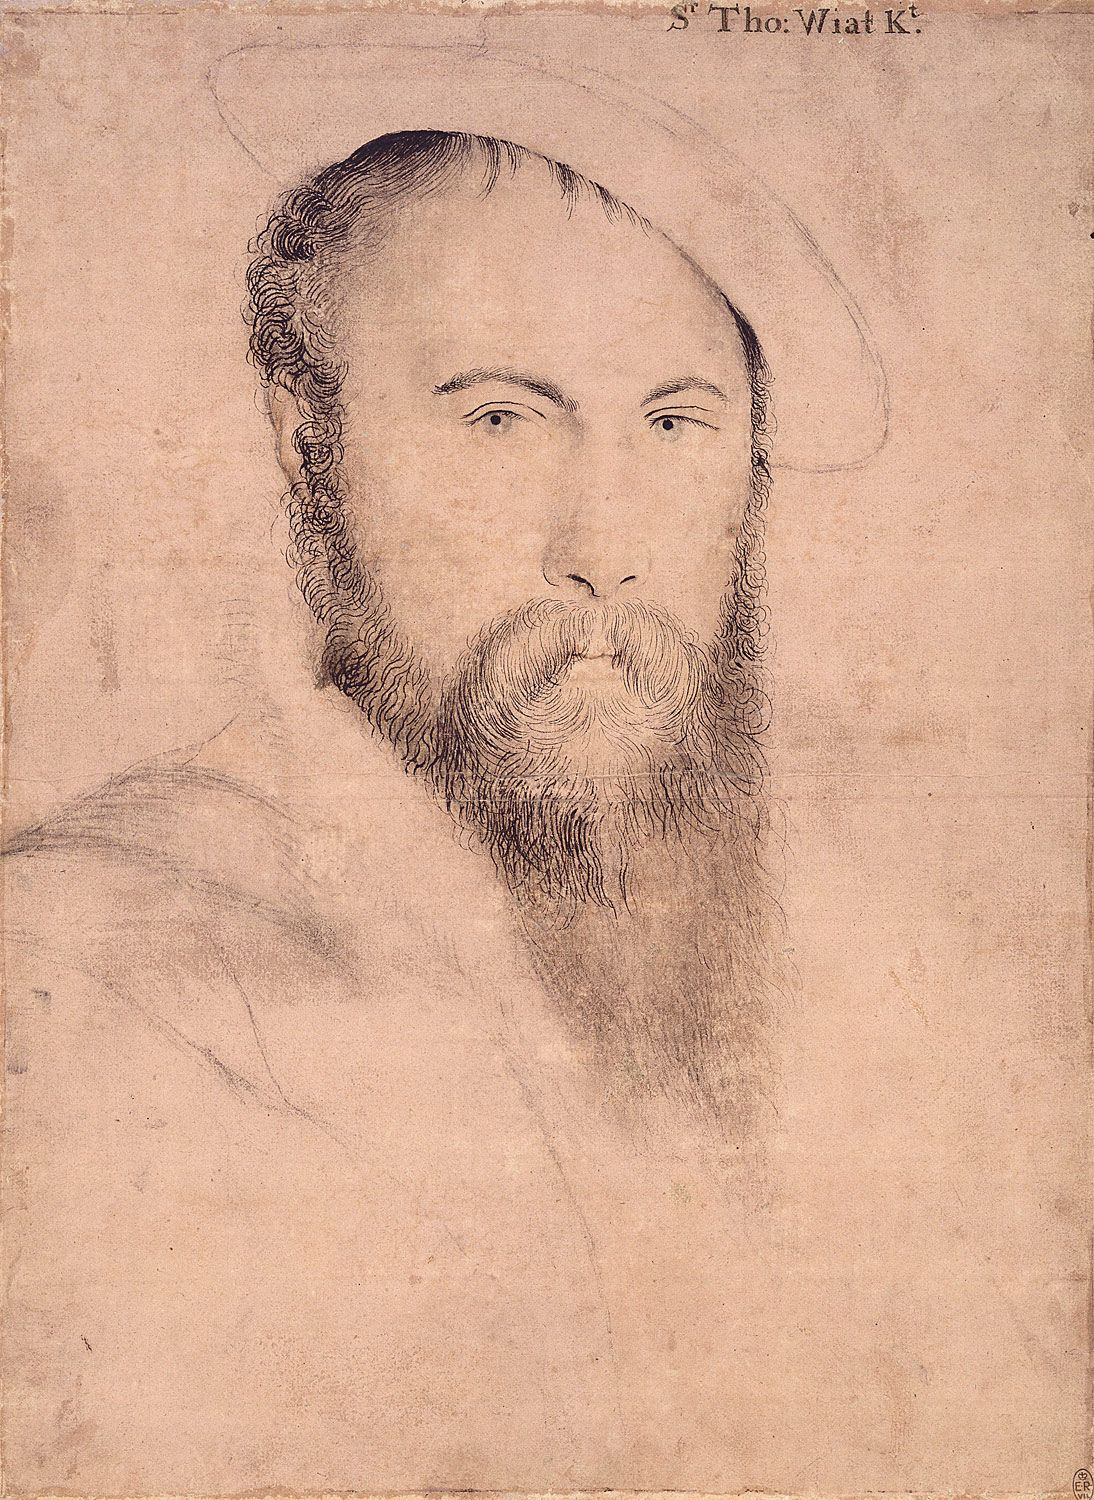 Portrait of Sir Thomas Wyatt